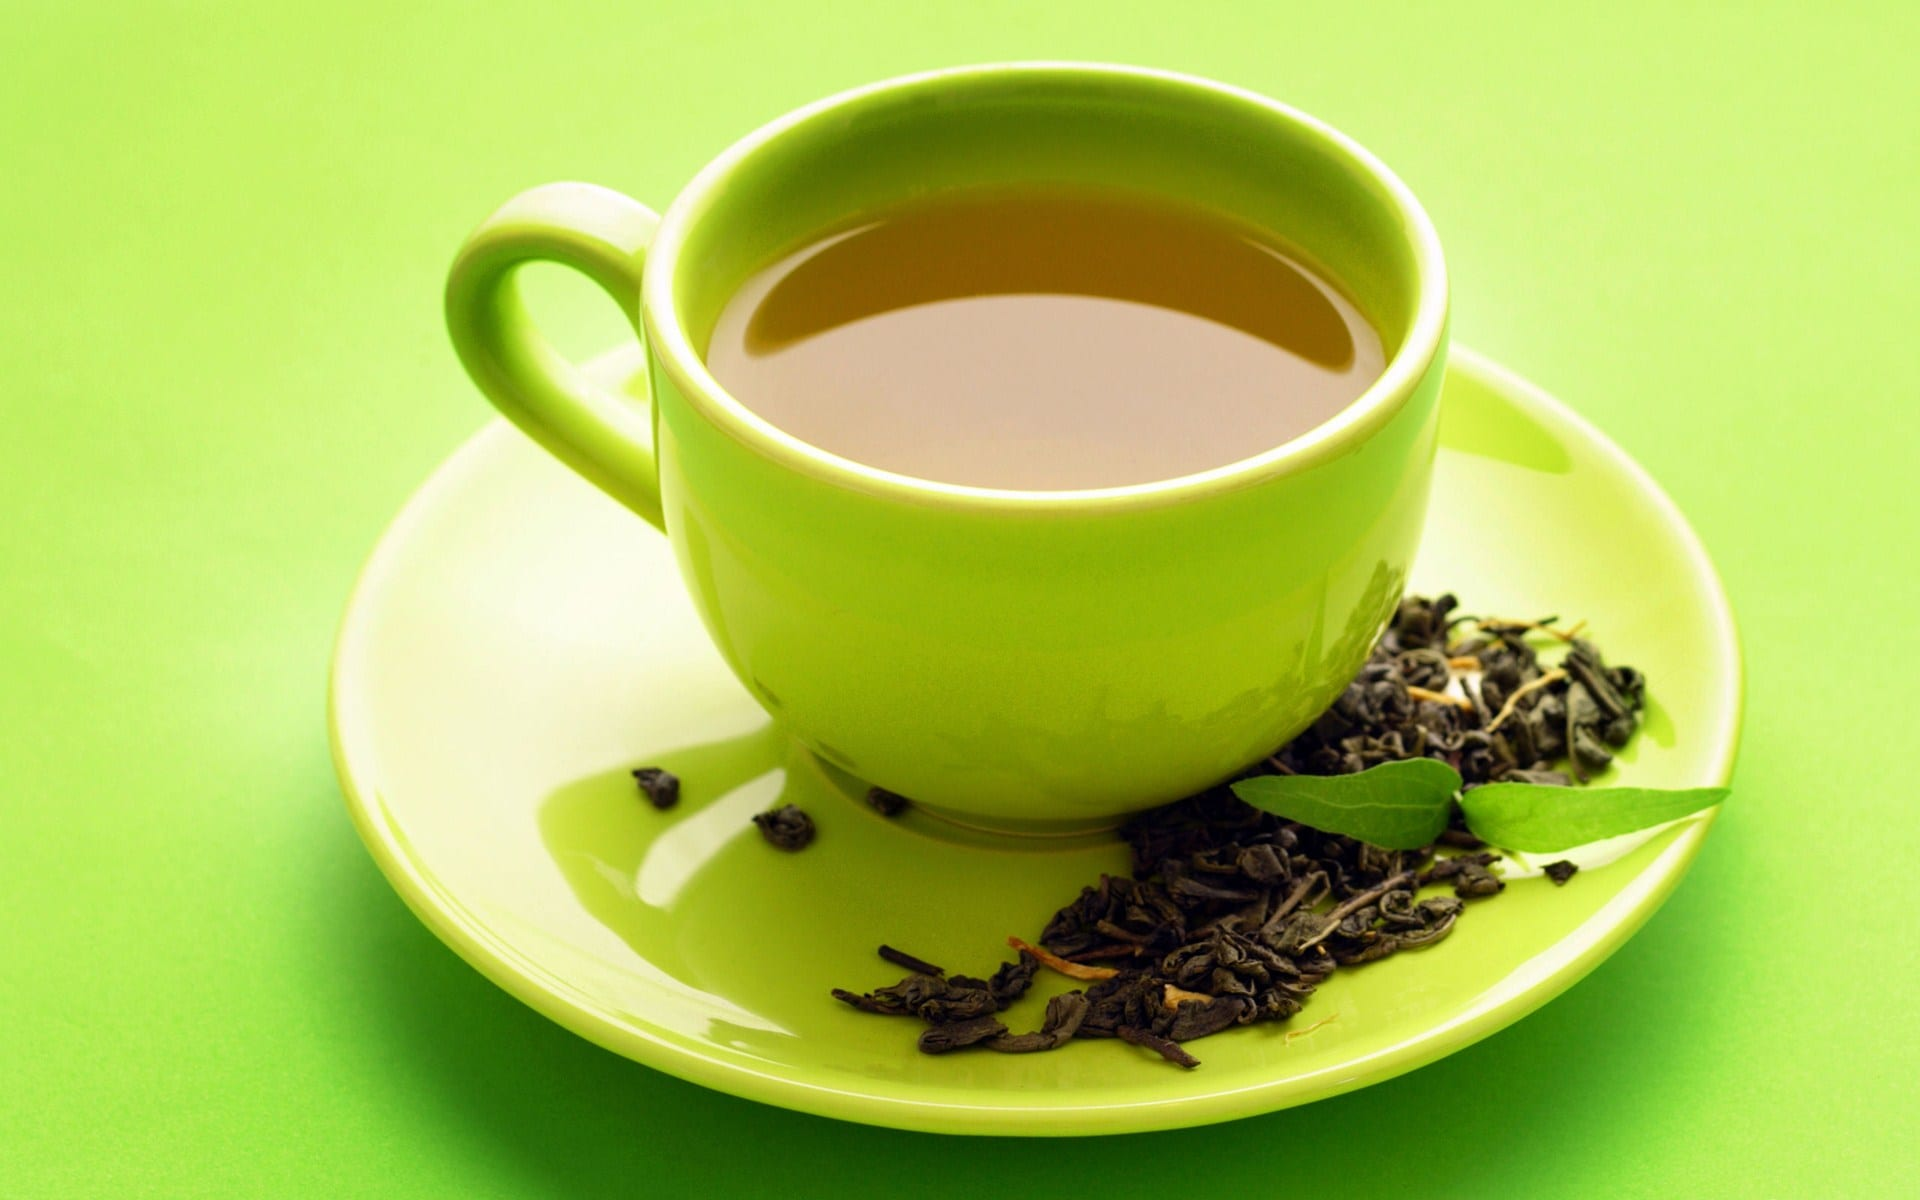 Top 10 Super Foods For Liver - Green Tea